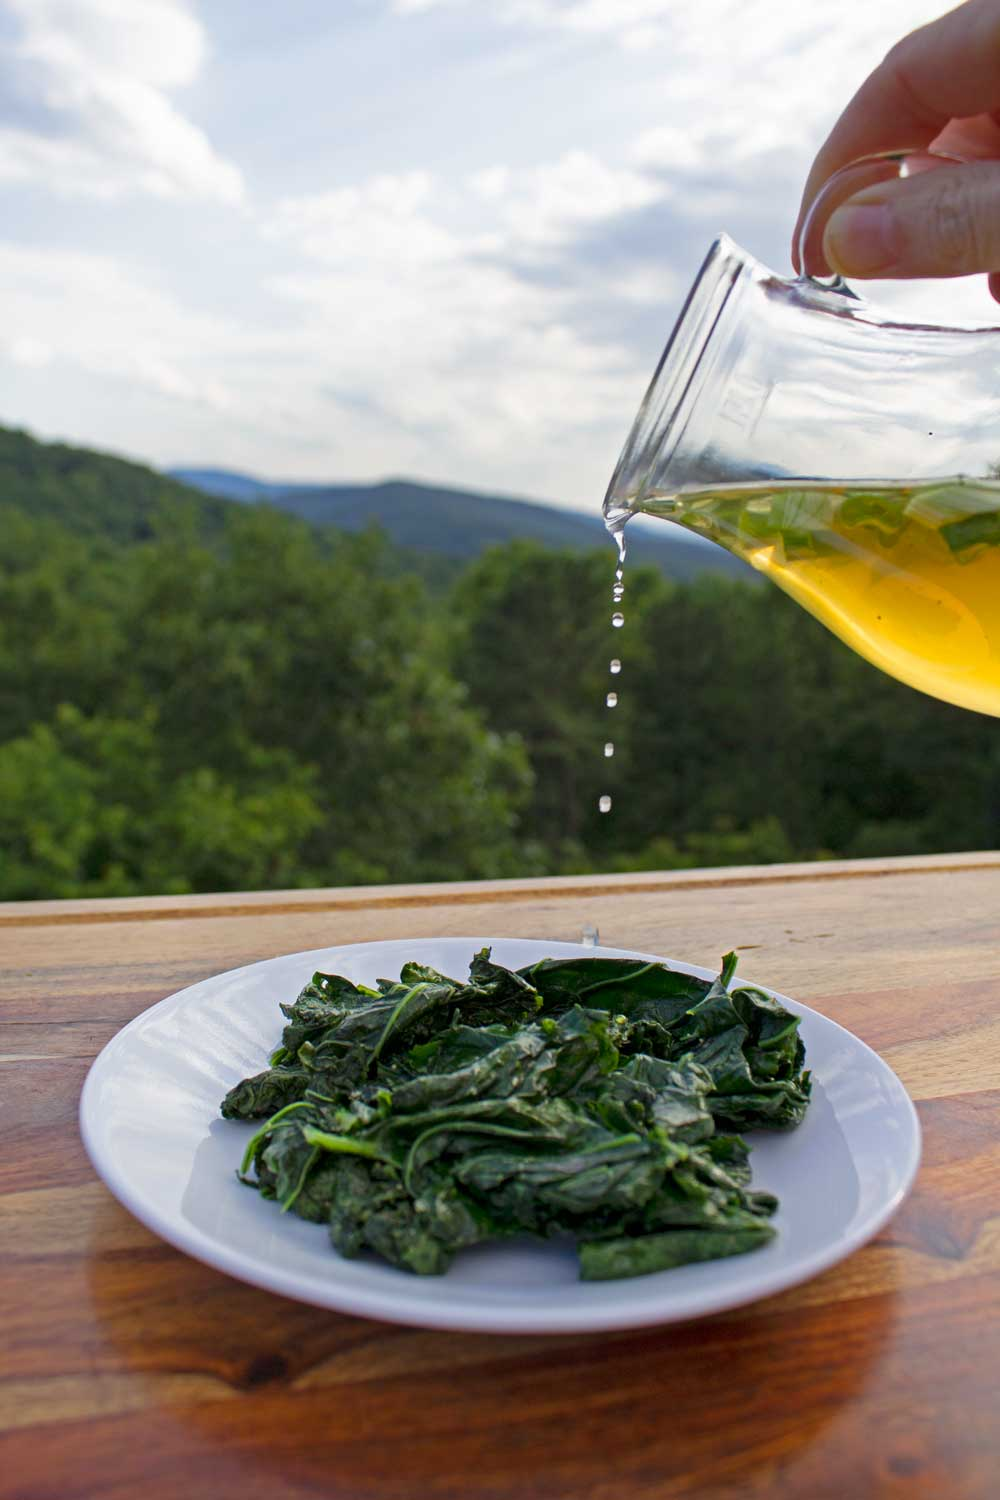 Sauteed kale is a super easy and healthy way to enjoy fresh kale. Savory and tender kale is lightly seasoned served with spring onion vinegar.